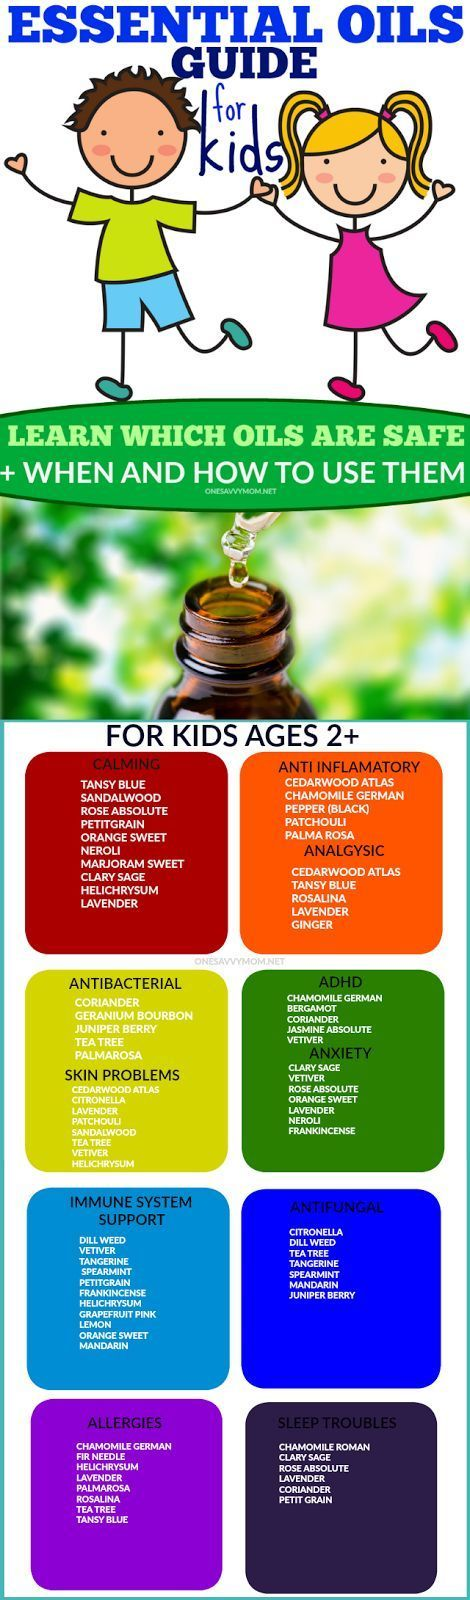 Essential Oils Guide For Kids: Which Oils Are Safe For Kids + When and How To Use Them Essential Oils have so many amazing health benefits. Essential Oils can be great for kids too! However, not all essential oils are safe for kids. Knowing which oils to use and how to use them, can be a really tricky thing to navigate.